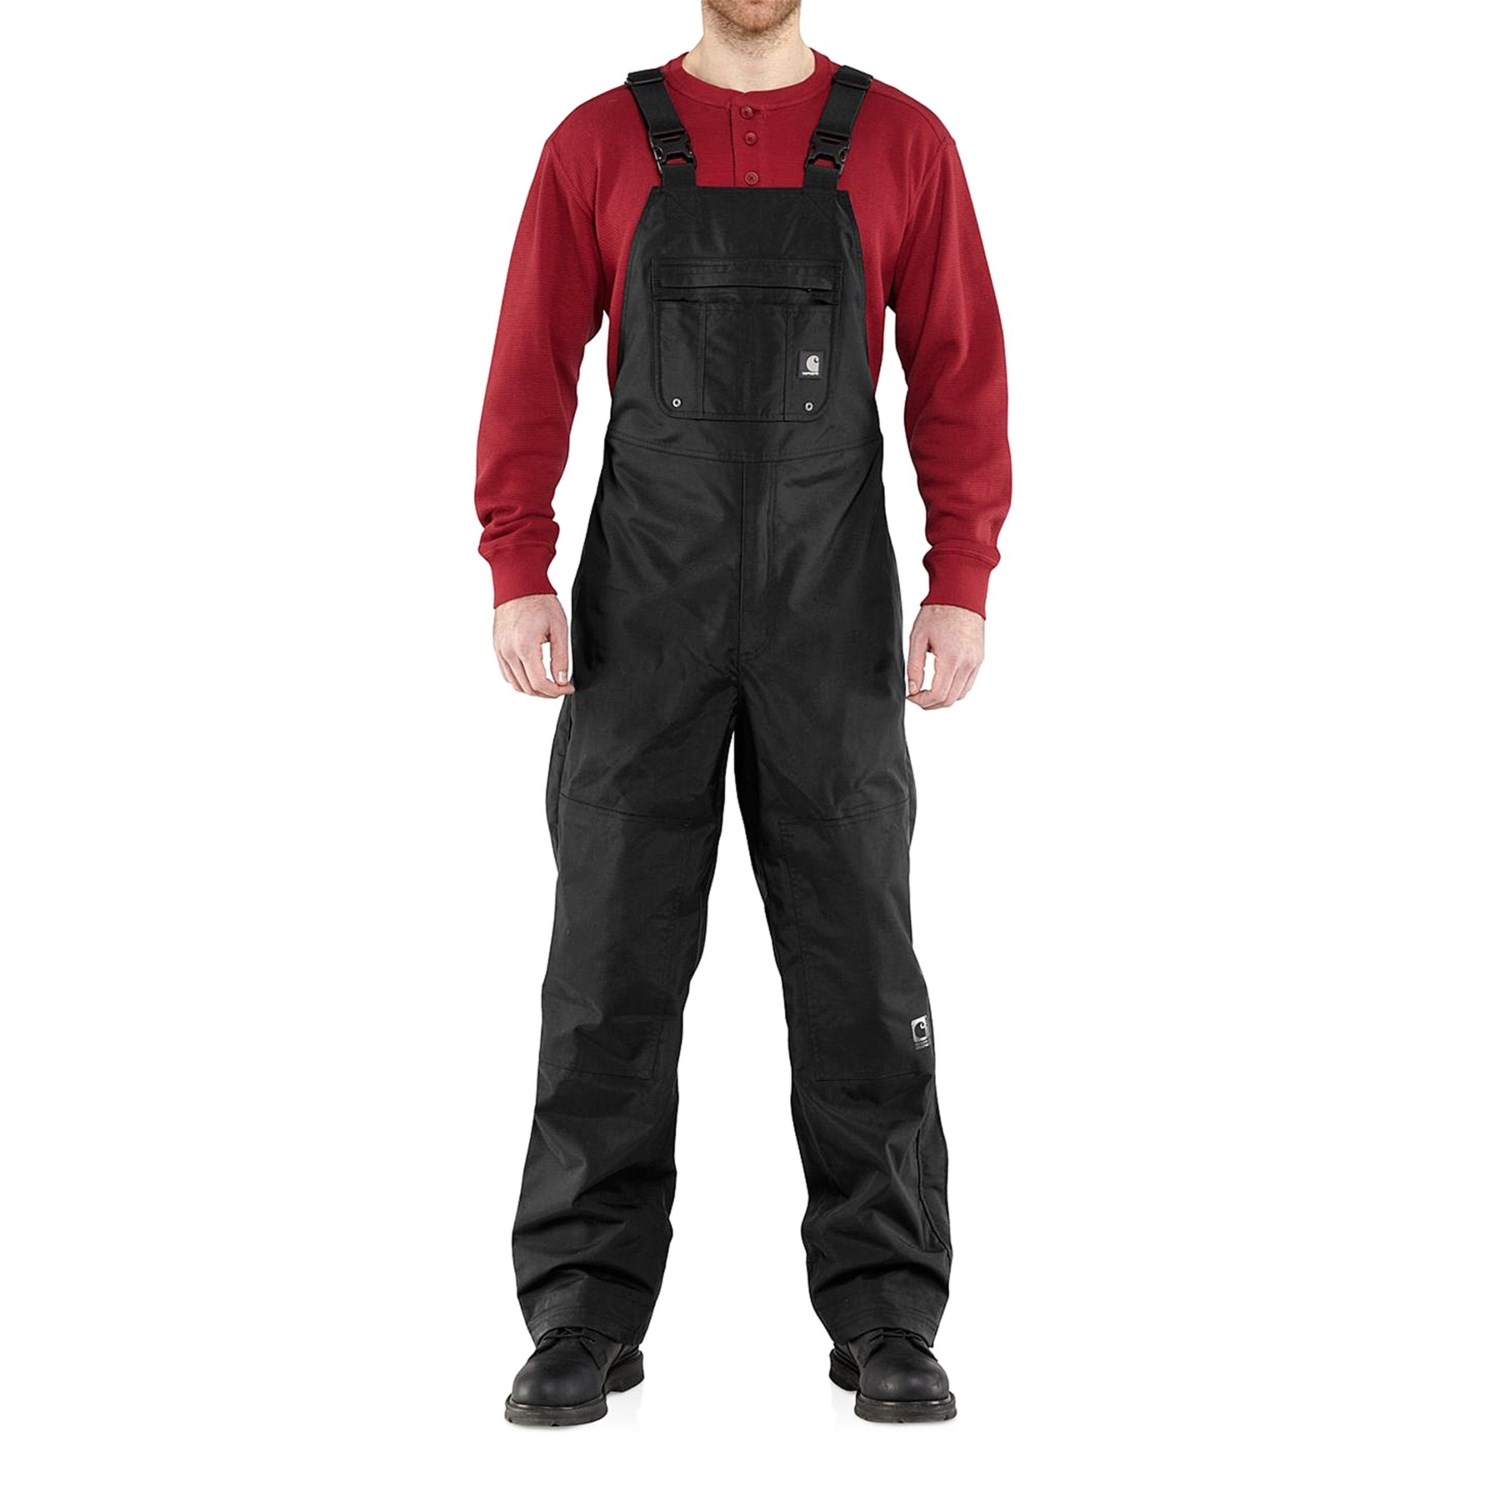 Waterproof Bib Overalls Restaurant Supply Sacramento